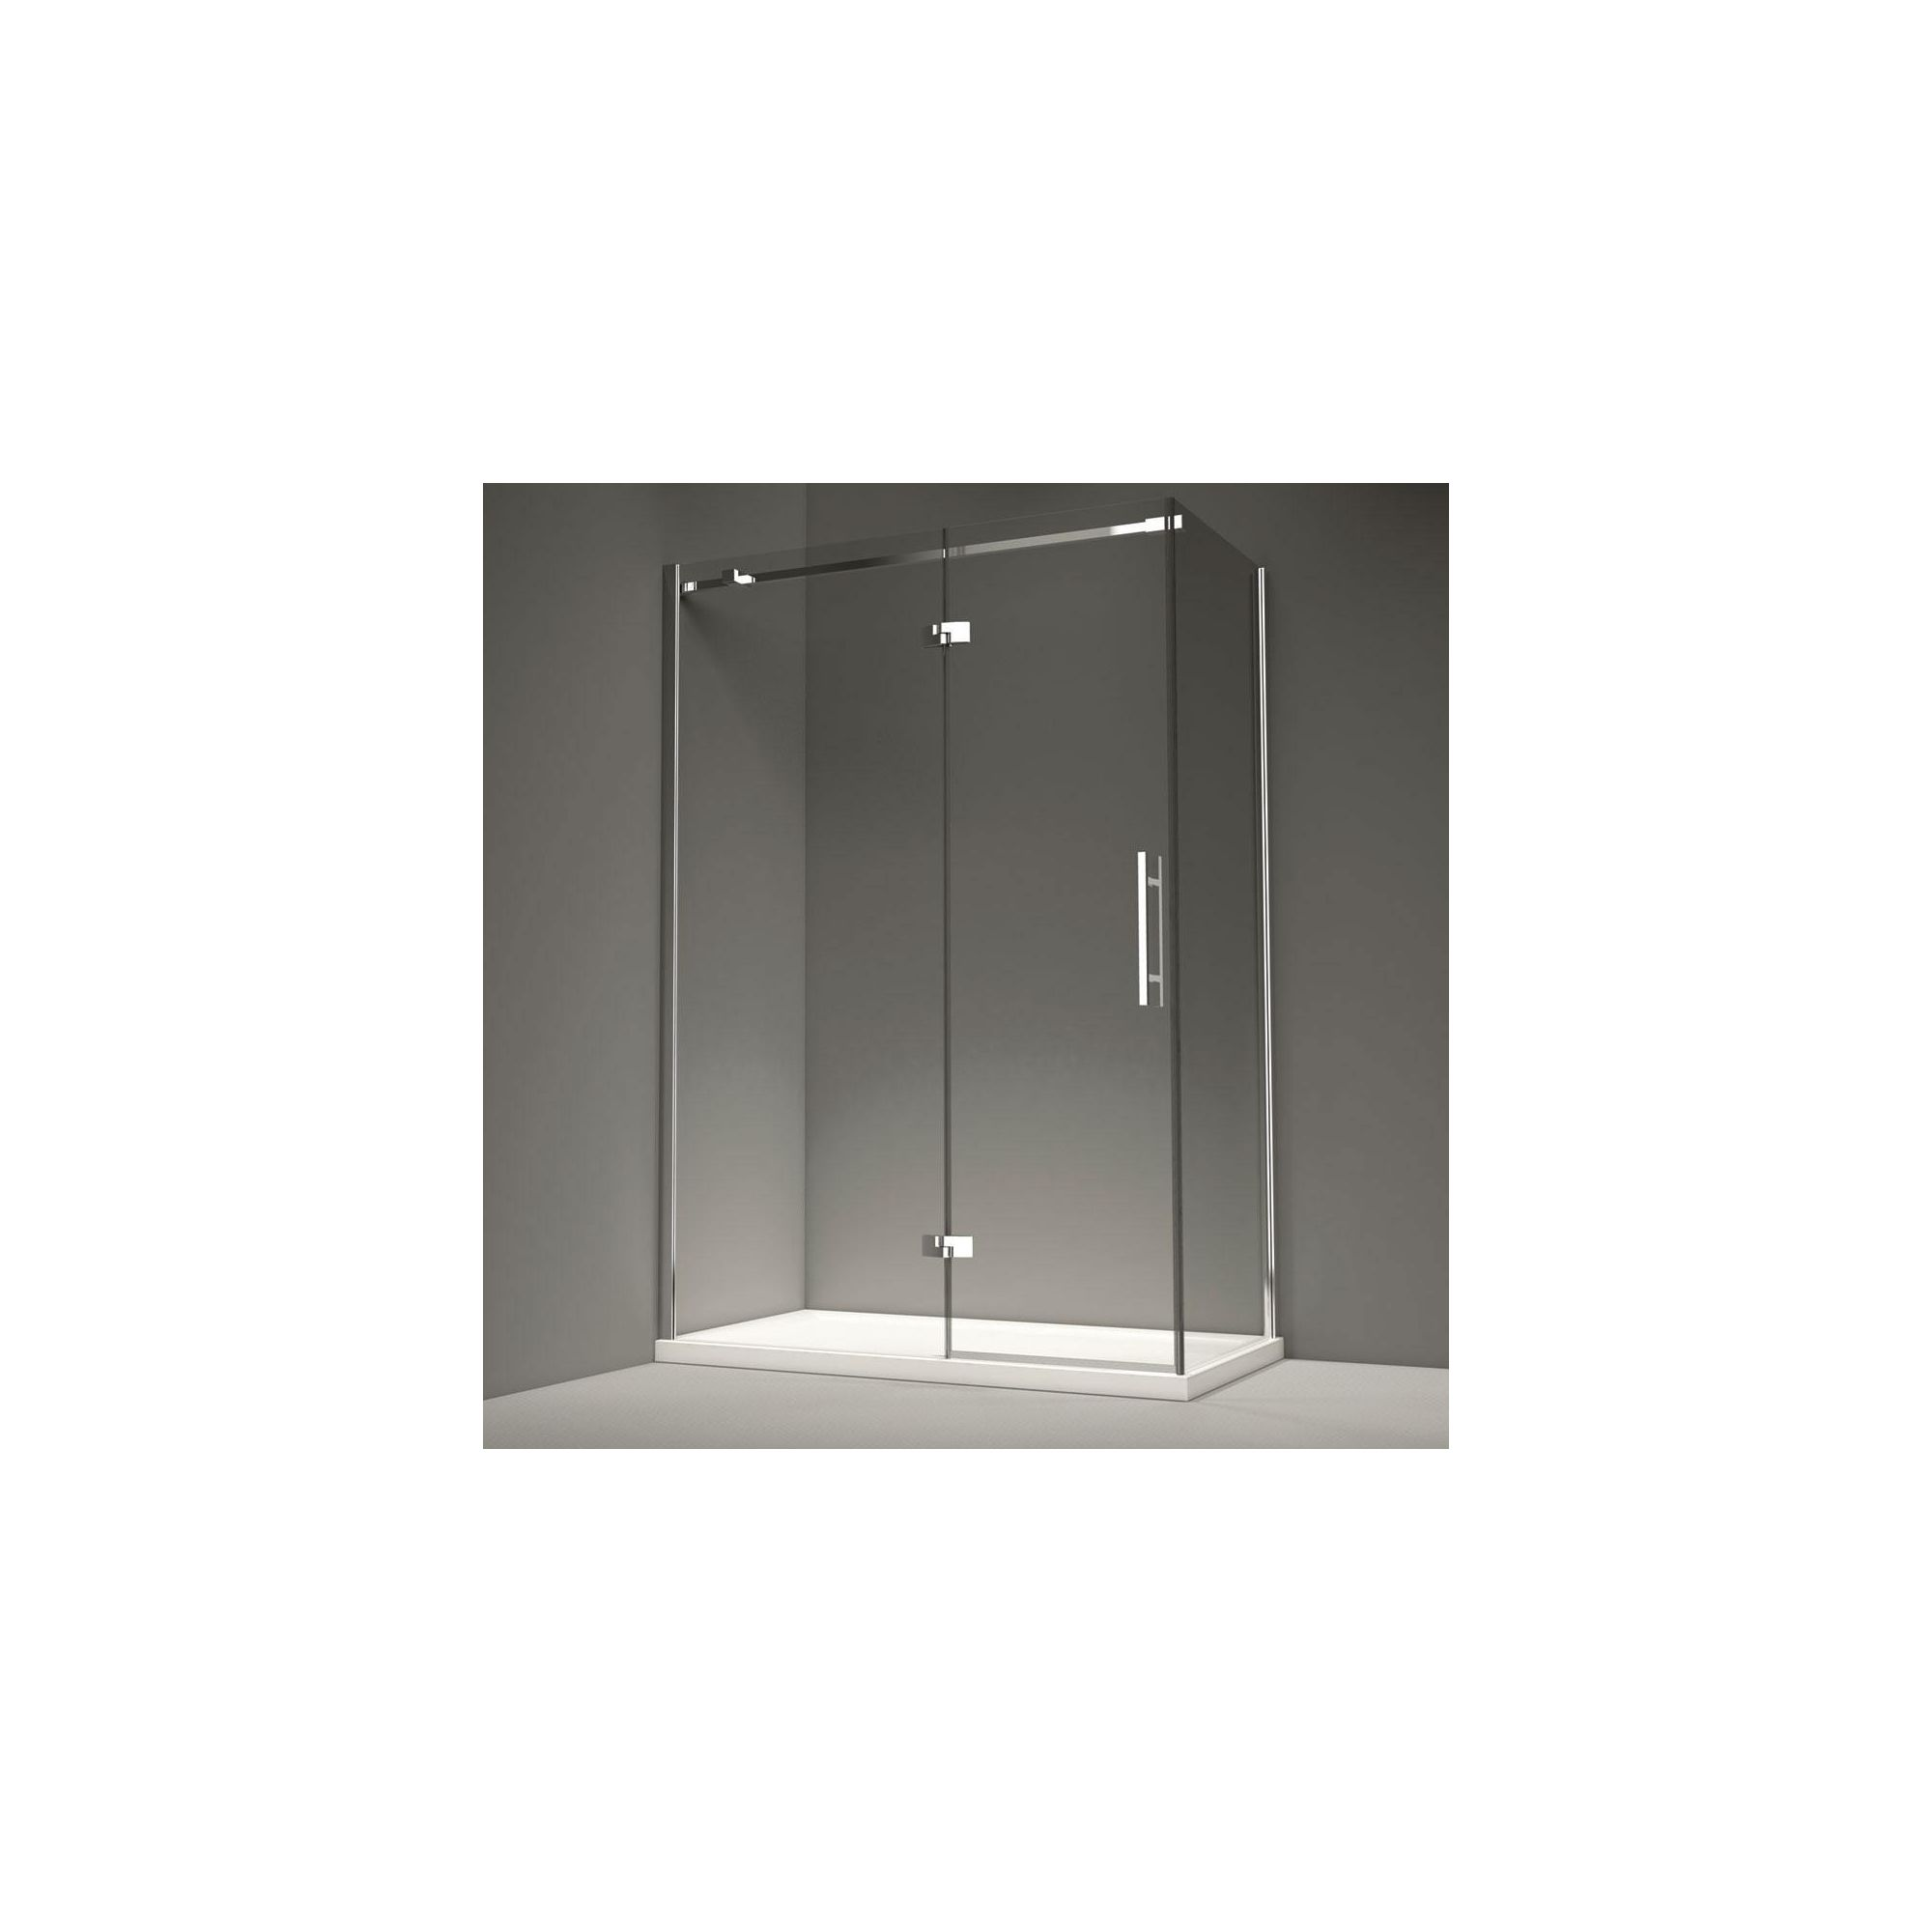 Merlyn Series 9 Inline Hinged Shower Door, 1600mm Wide, 8mm Glass, Left Handed at Tesco Direct